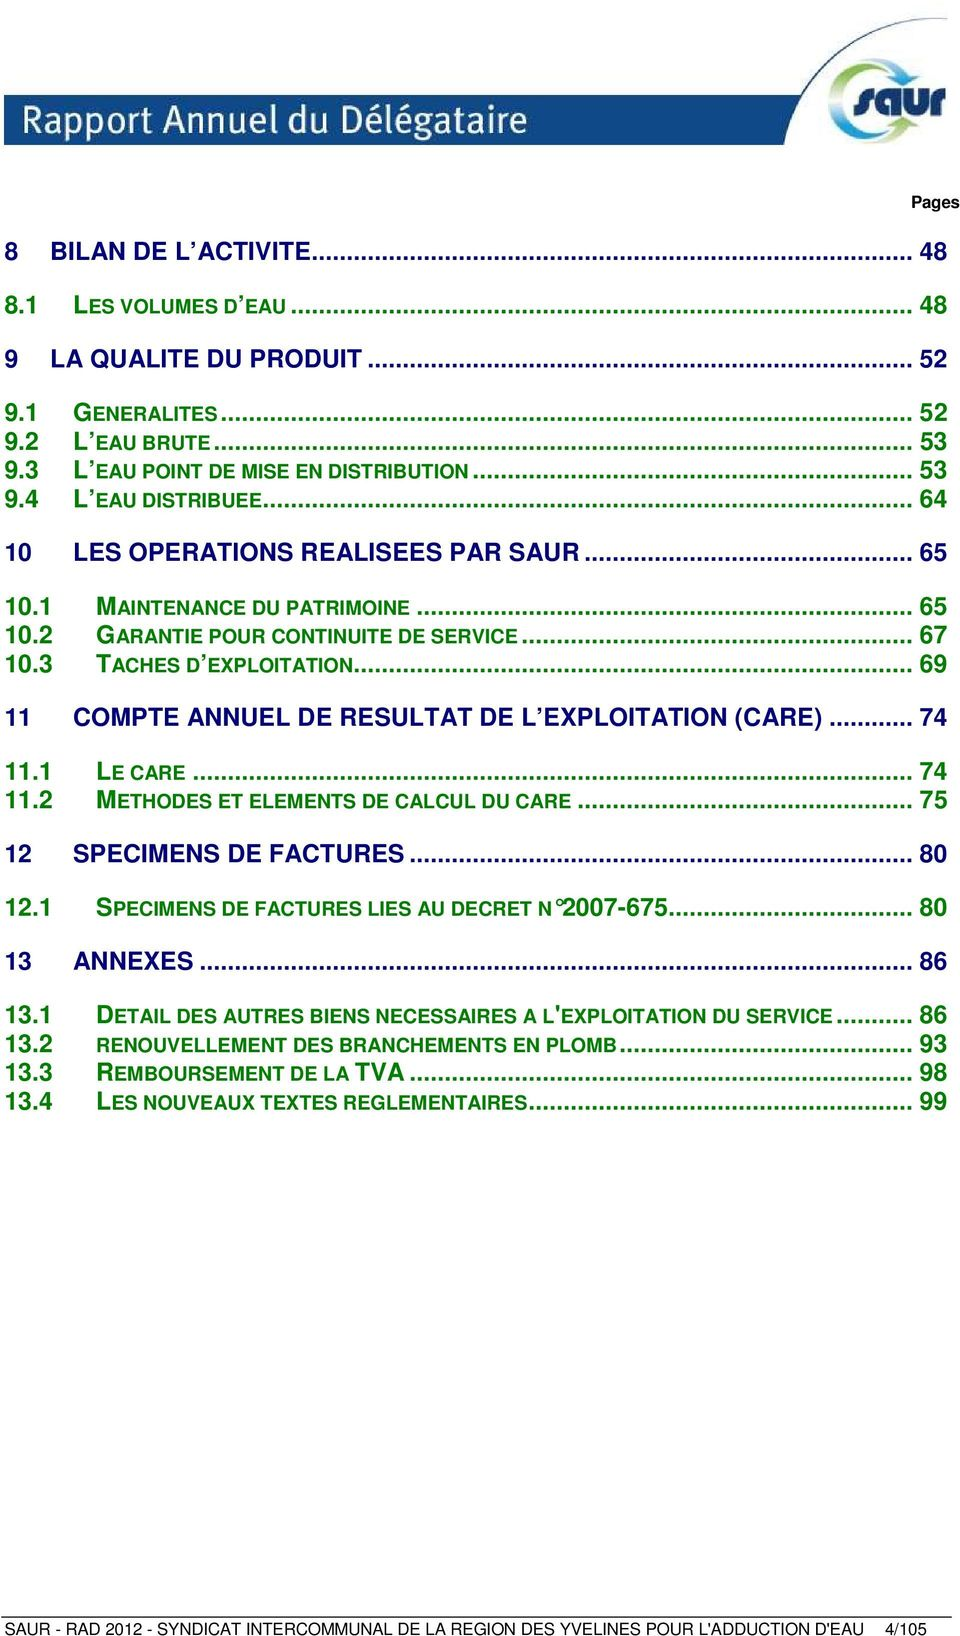 .. 69 11 COMPTE ANNUEL DE RESULTAT DE L EXPLOITATION (CARE)... 74 11.1 LE CARE... 74 11.2 METHODES ET ELEMENTS DE CALCUL DU CARE... 75 12 SPECIMENS DE FACTURES... 80 12.